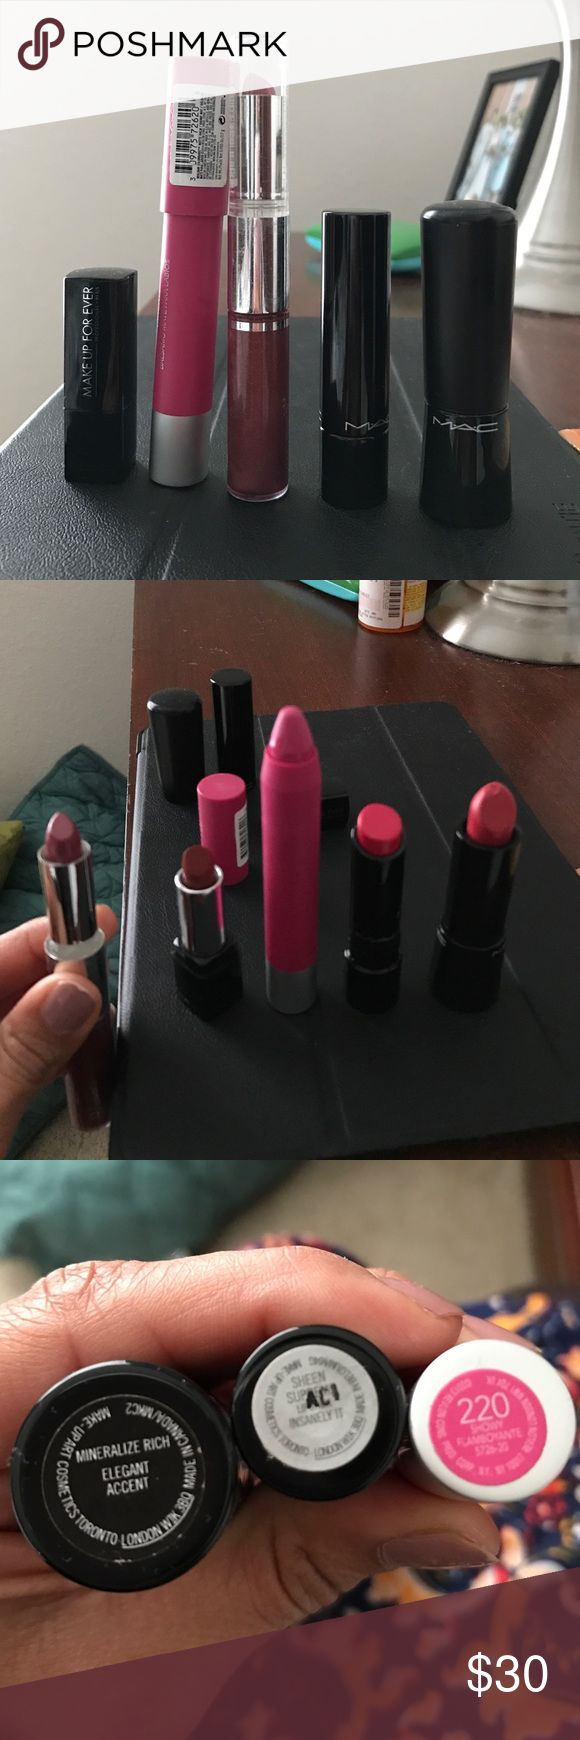 Lip Bundle MAC Revlon Makeup Forever Clinique Bare All is either unused or swatched. These have been sitting in my drawer not used. One of the MAC lipsticks is messed up but not used. Name of colors are Mac Insanely It. Mac Elegant Accent. Revlon 220 Showy. Makeup Forever Rouge. Clinique 33 Raspberry Glacé and 13 Fireberry. Bare Minerals Dare Devil. Willing to separate if you would like. Let me know if you have questions. Willing to throw in my other lip gloss and liner listed in my closet…